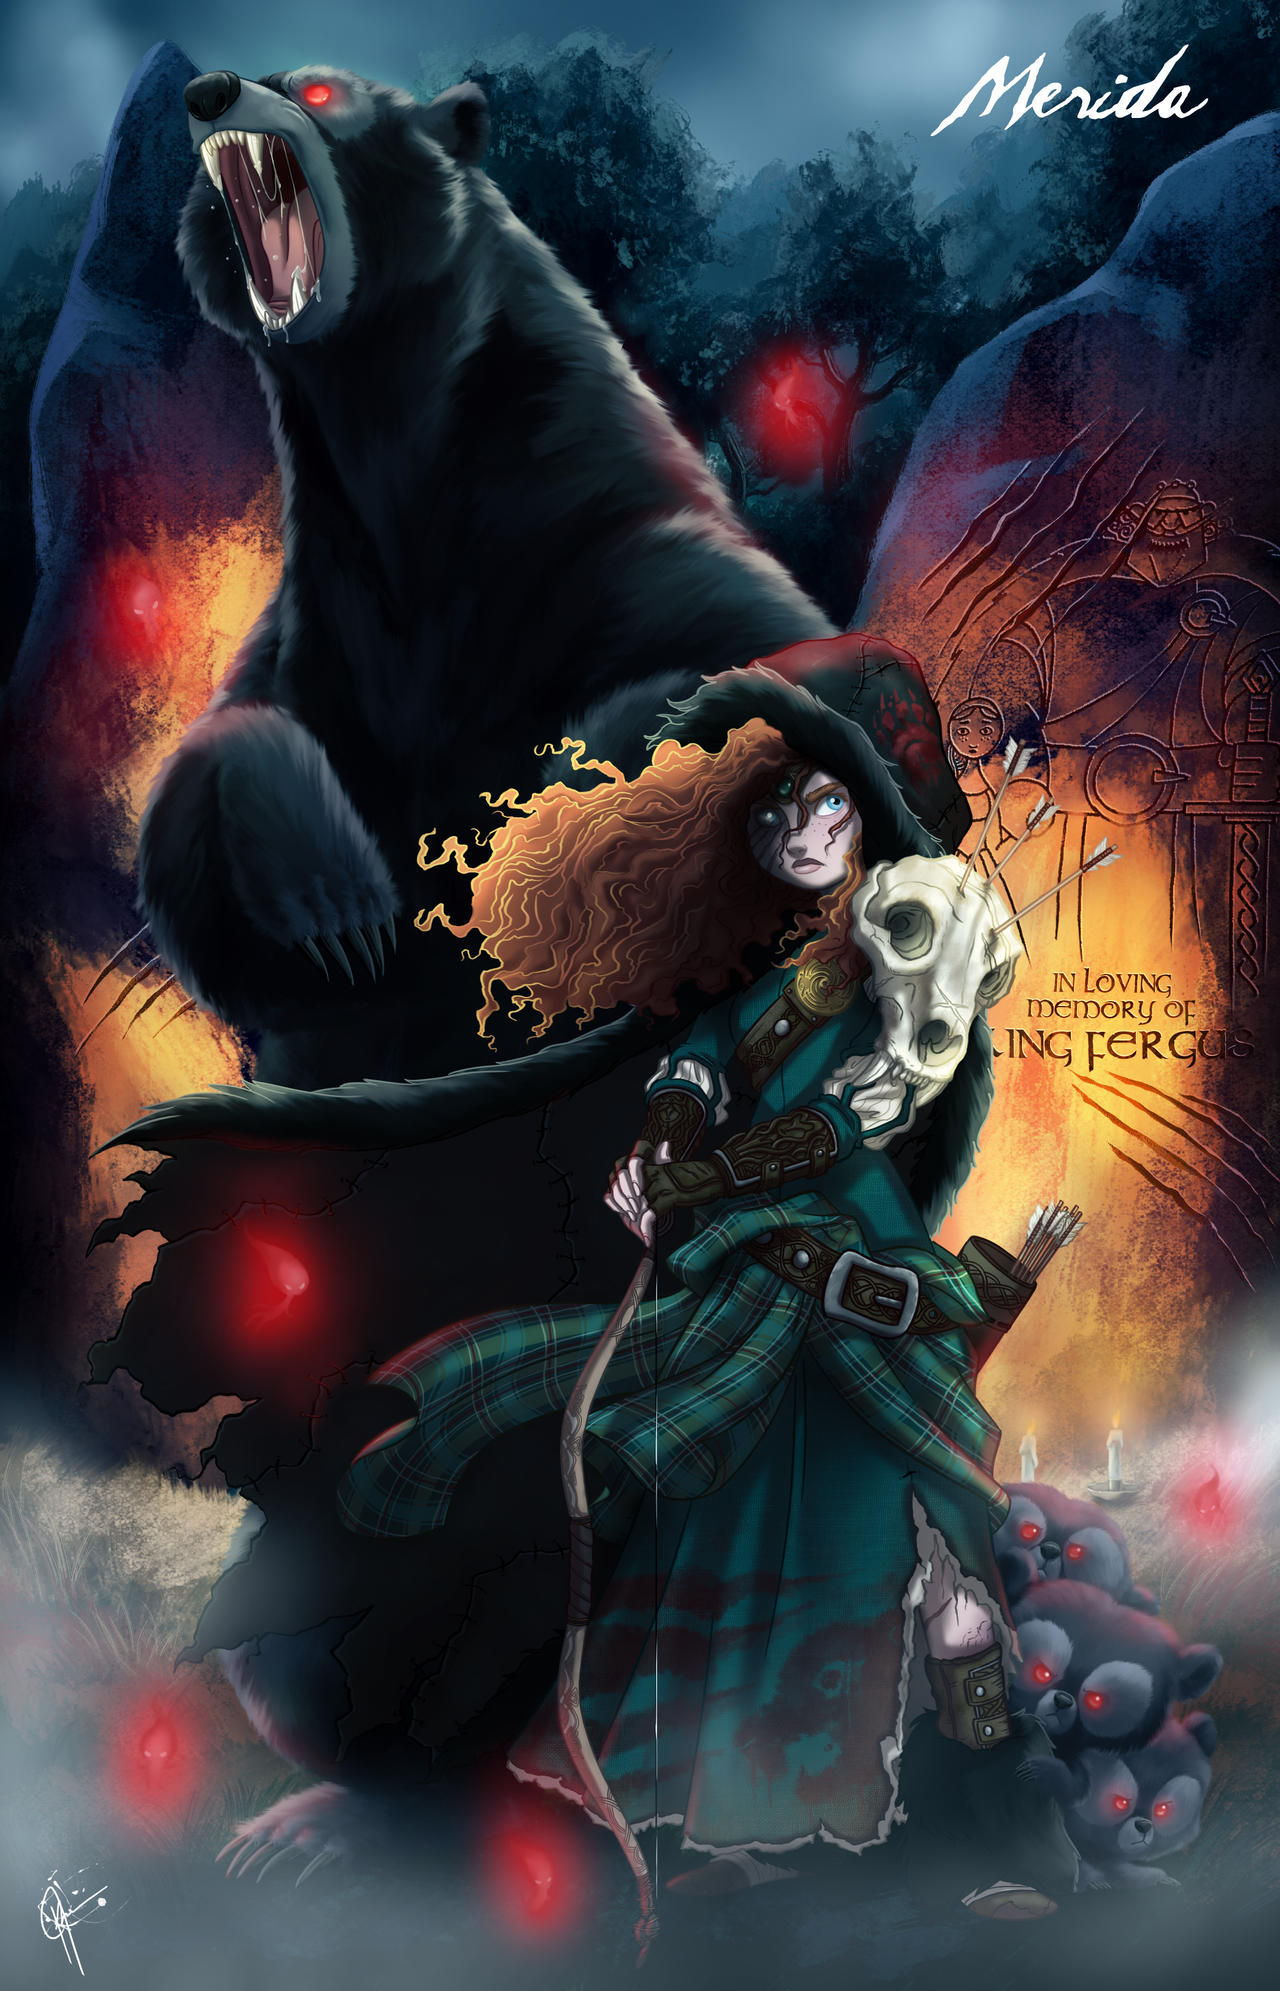 Merida As A Princess Twisted Princess Merida By Jeftoon Dybkbo